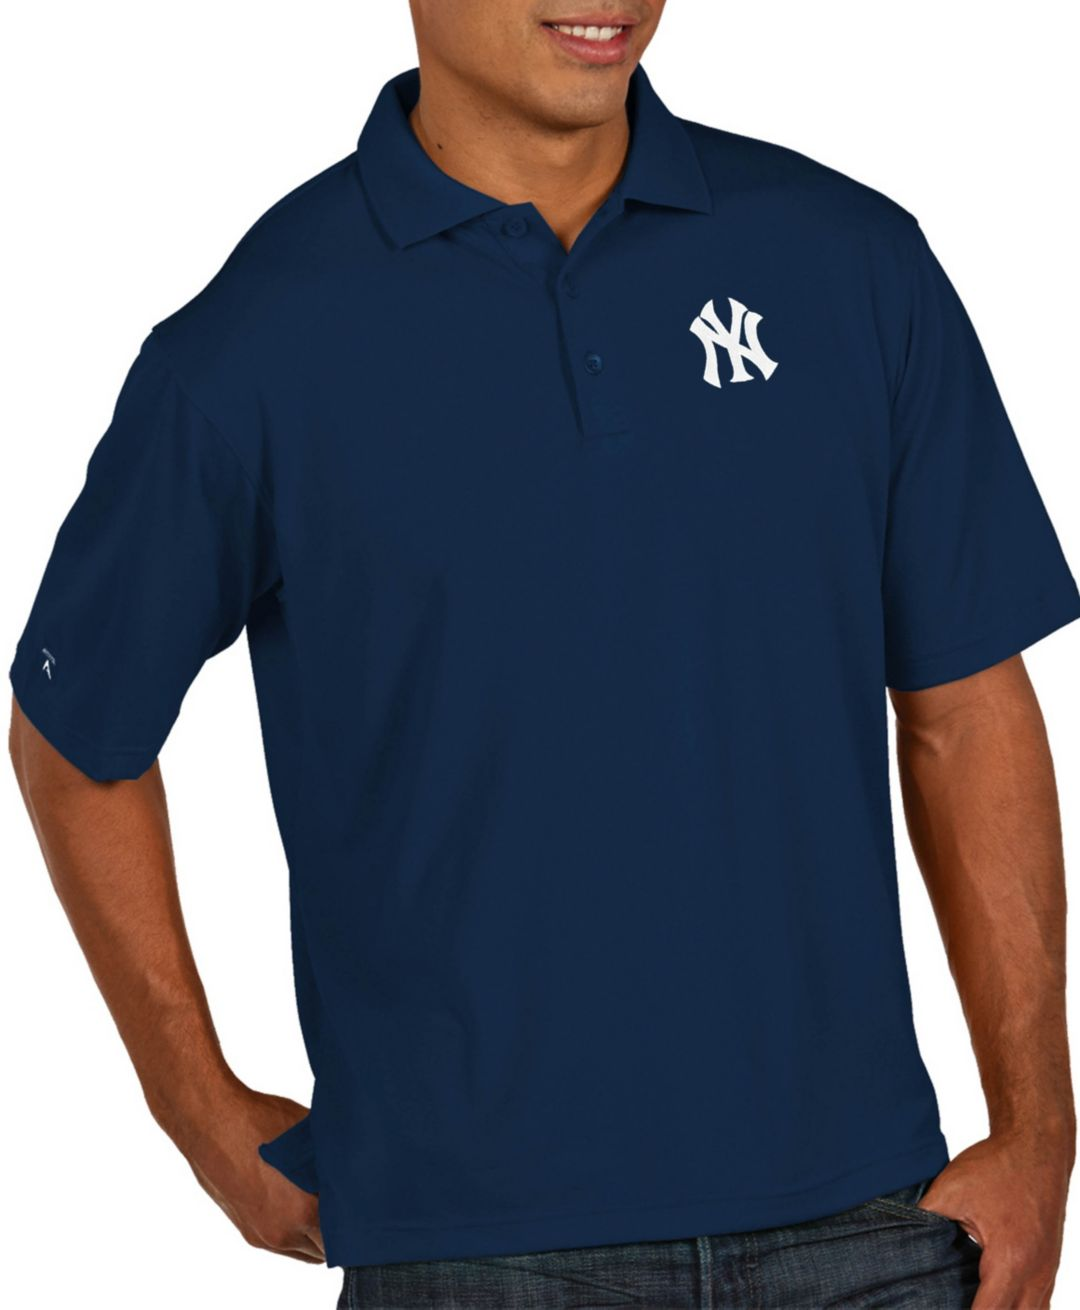 1a1ee1431 Antigua Men's New York Yankees Pique Navy Performance Polo | DICK'S ...